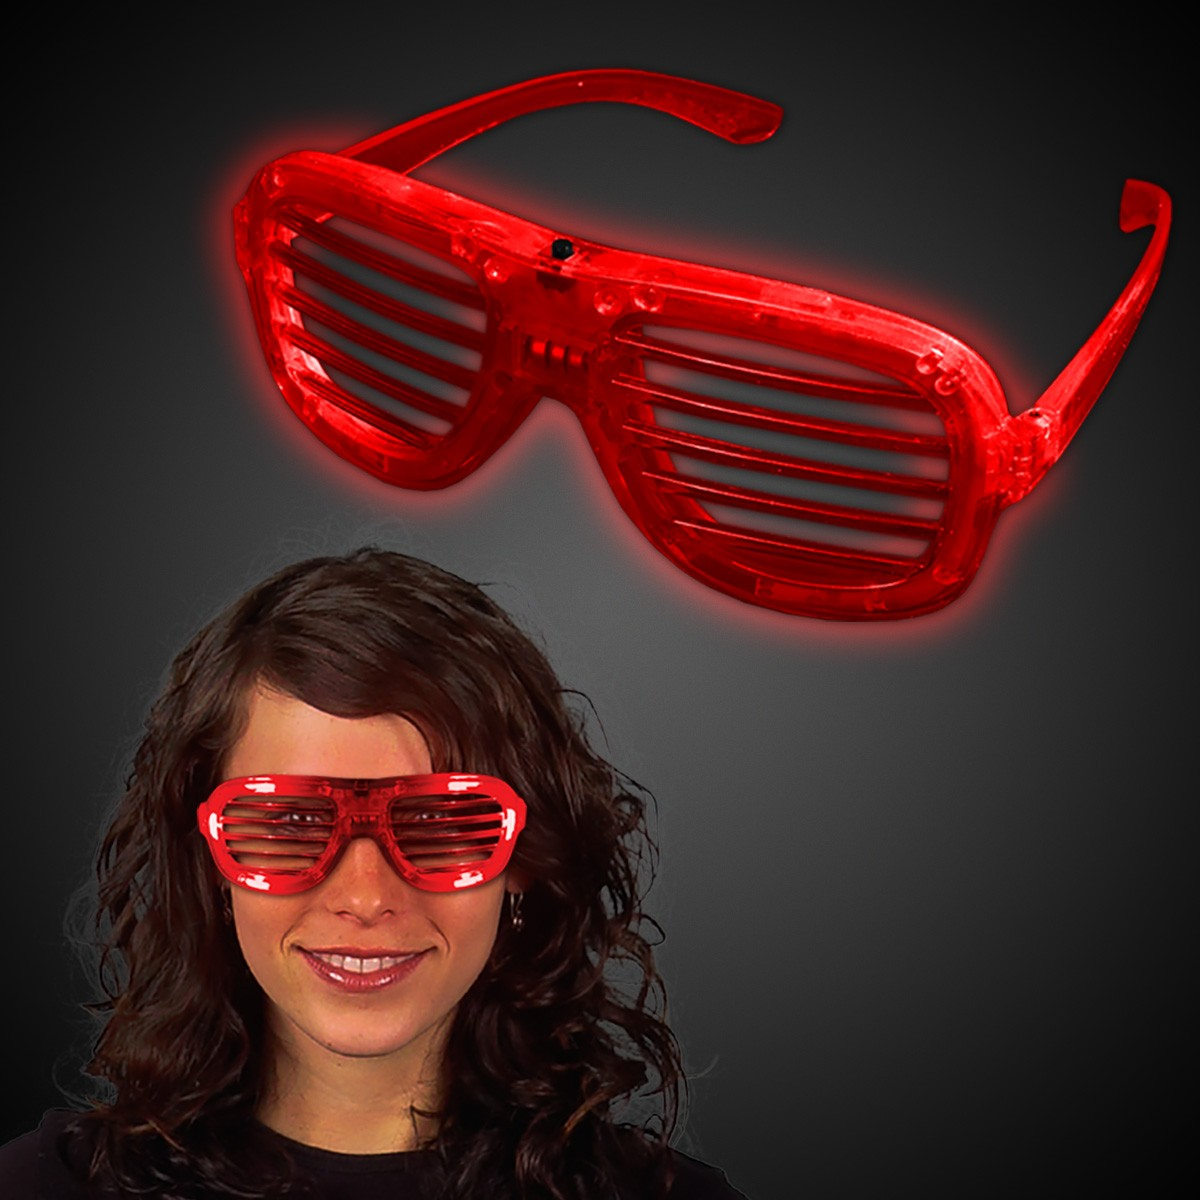 RED L.E.D. SLOTTED GLASSES